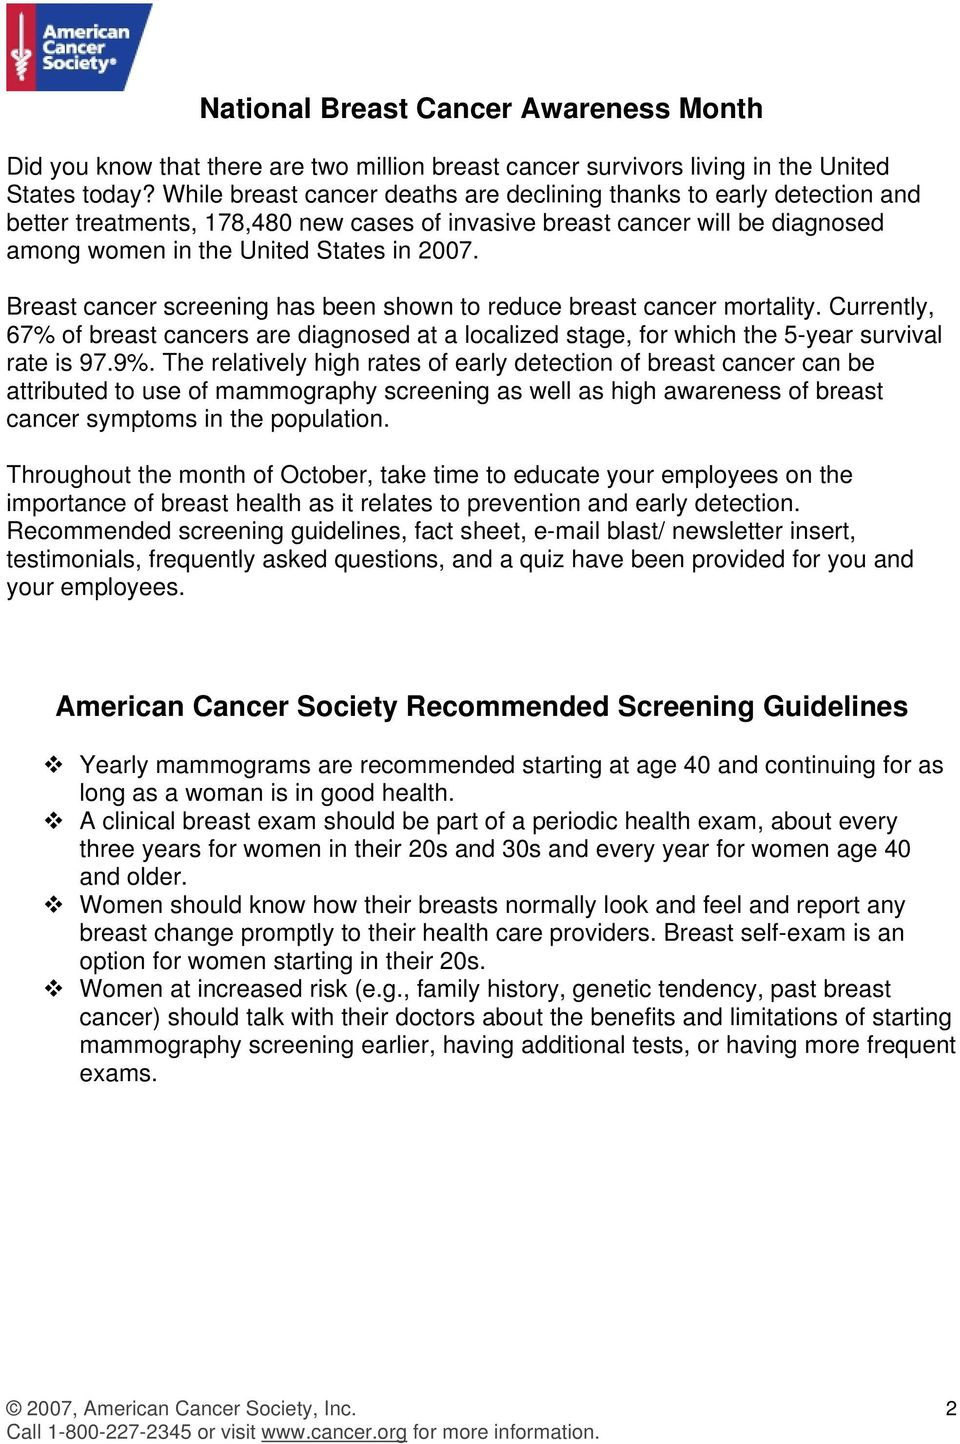 Breast cancer screening has been shown to reduce breast cancer mortality. Currently, 67% of breast cancers are diagnosed at a localized stage, for which the 5-year survival rate is 97.9%.